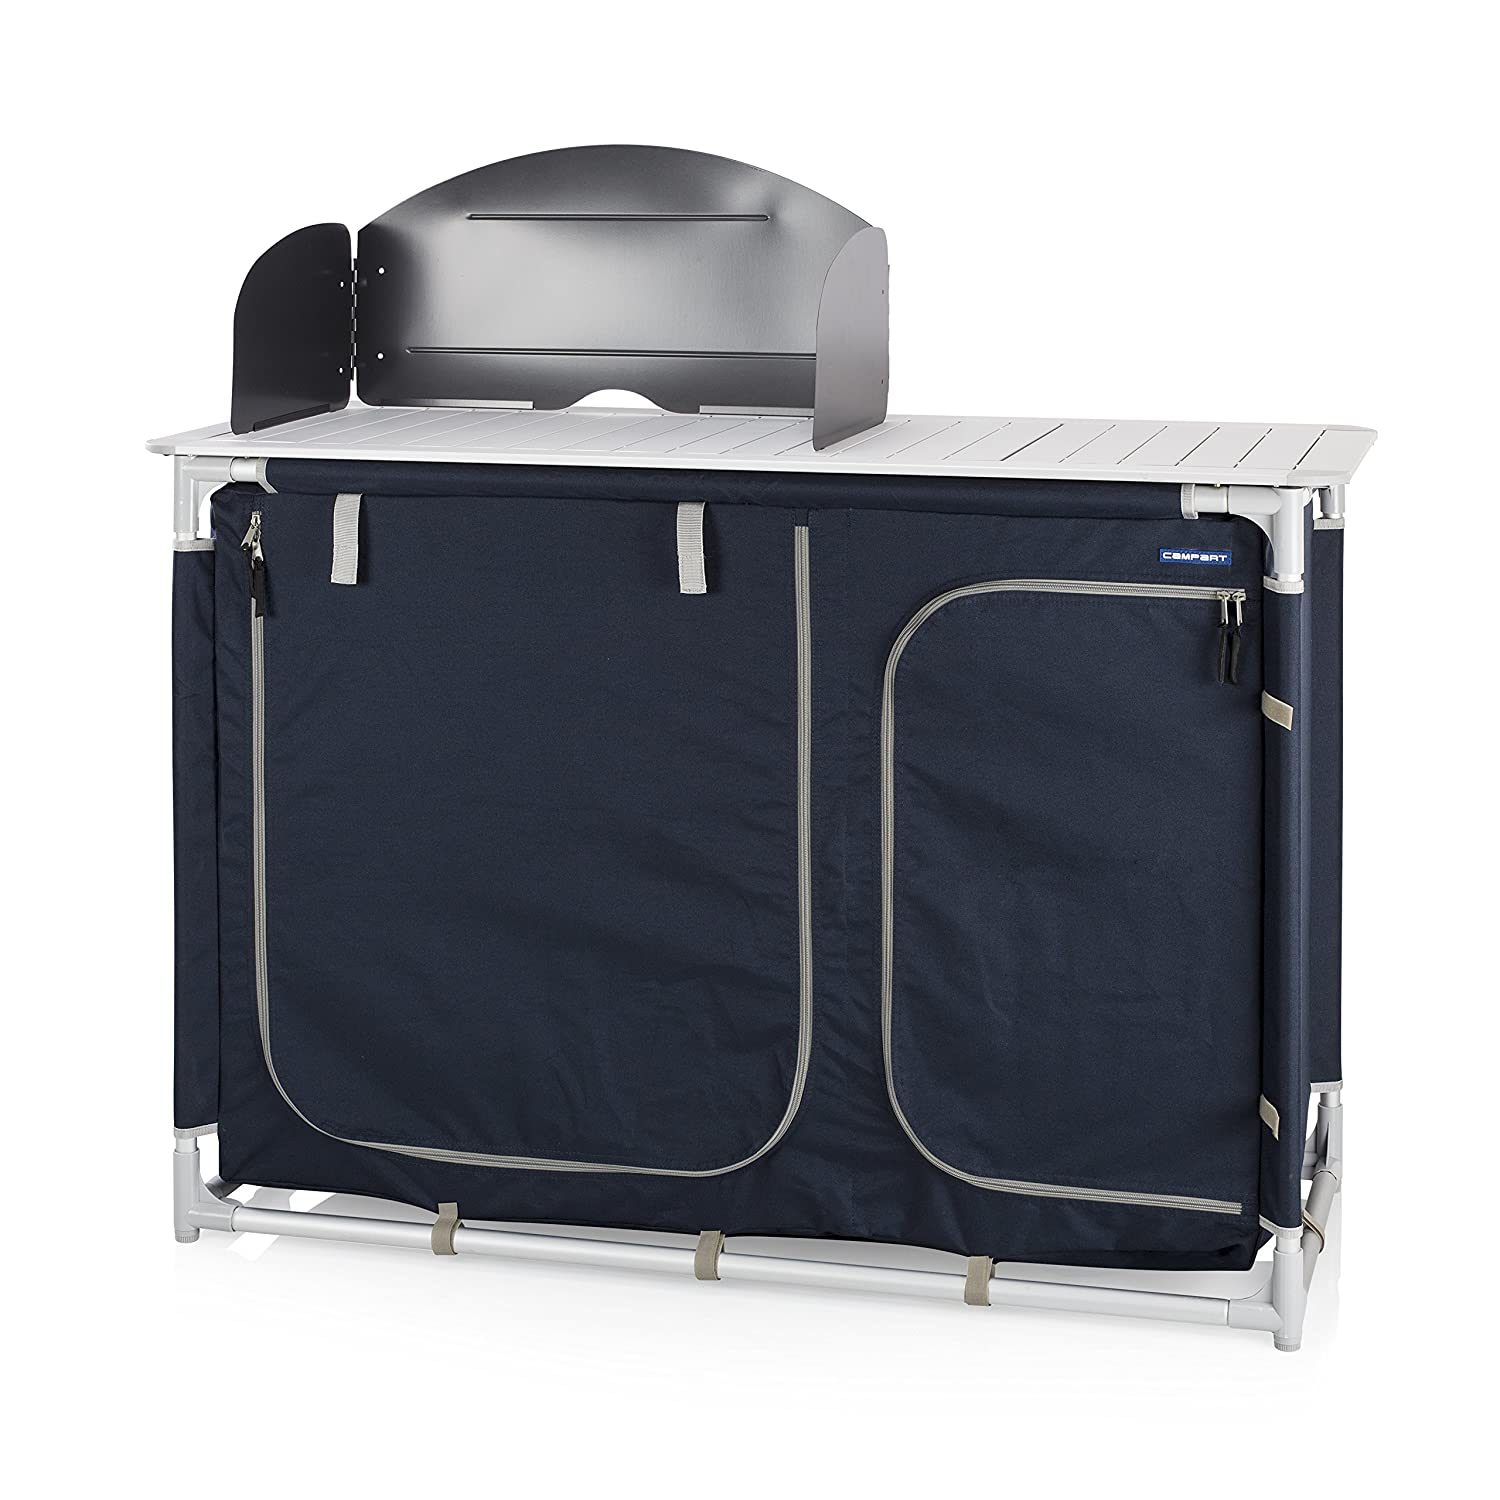 Campart Travel KI-0752 Outdoor Kitchen Valencia With windshield Storage bag included